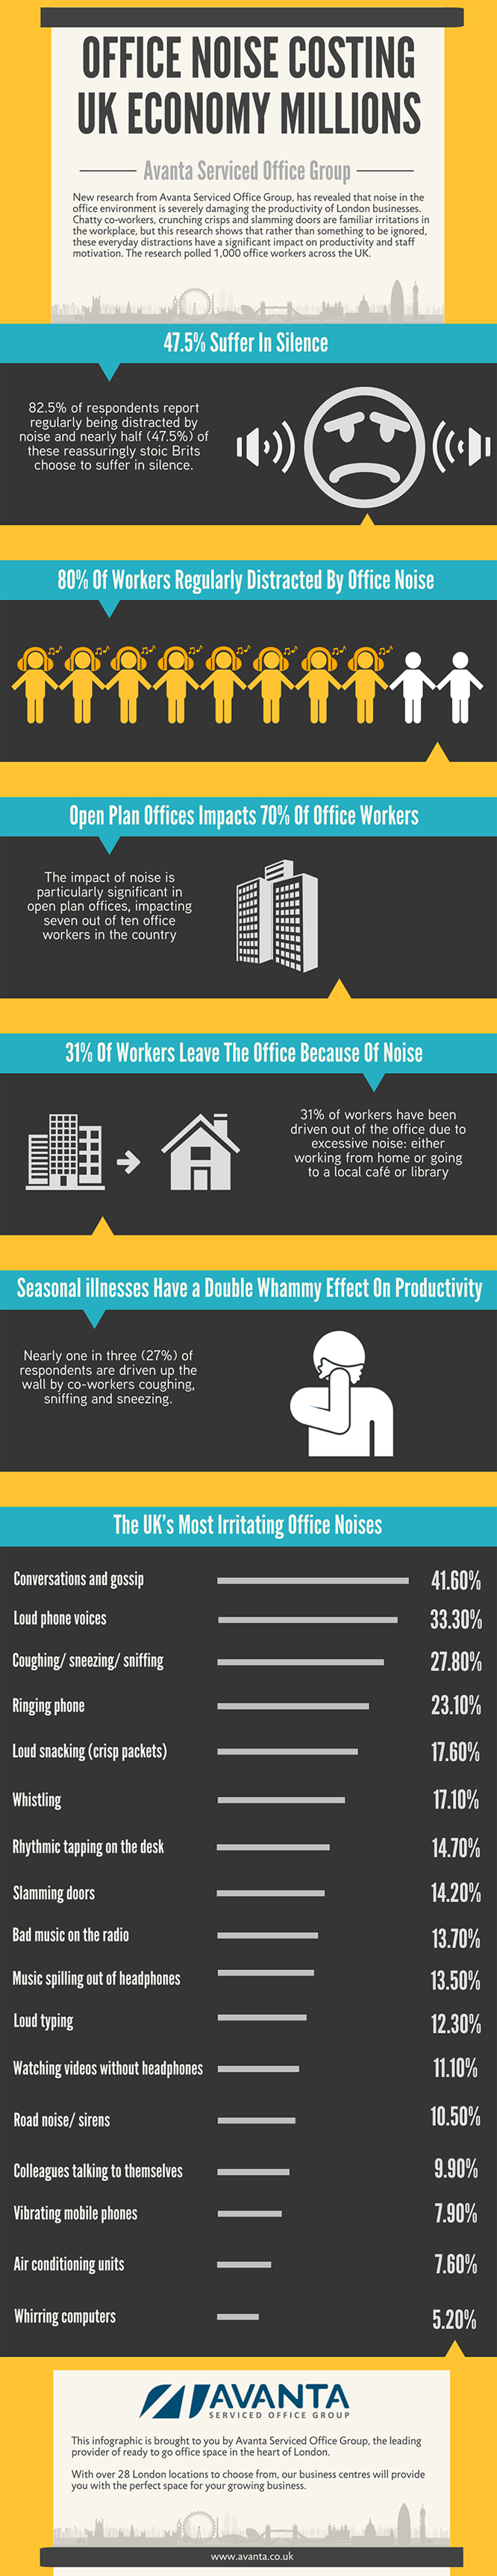 office noise infographic